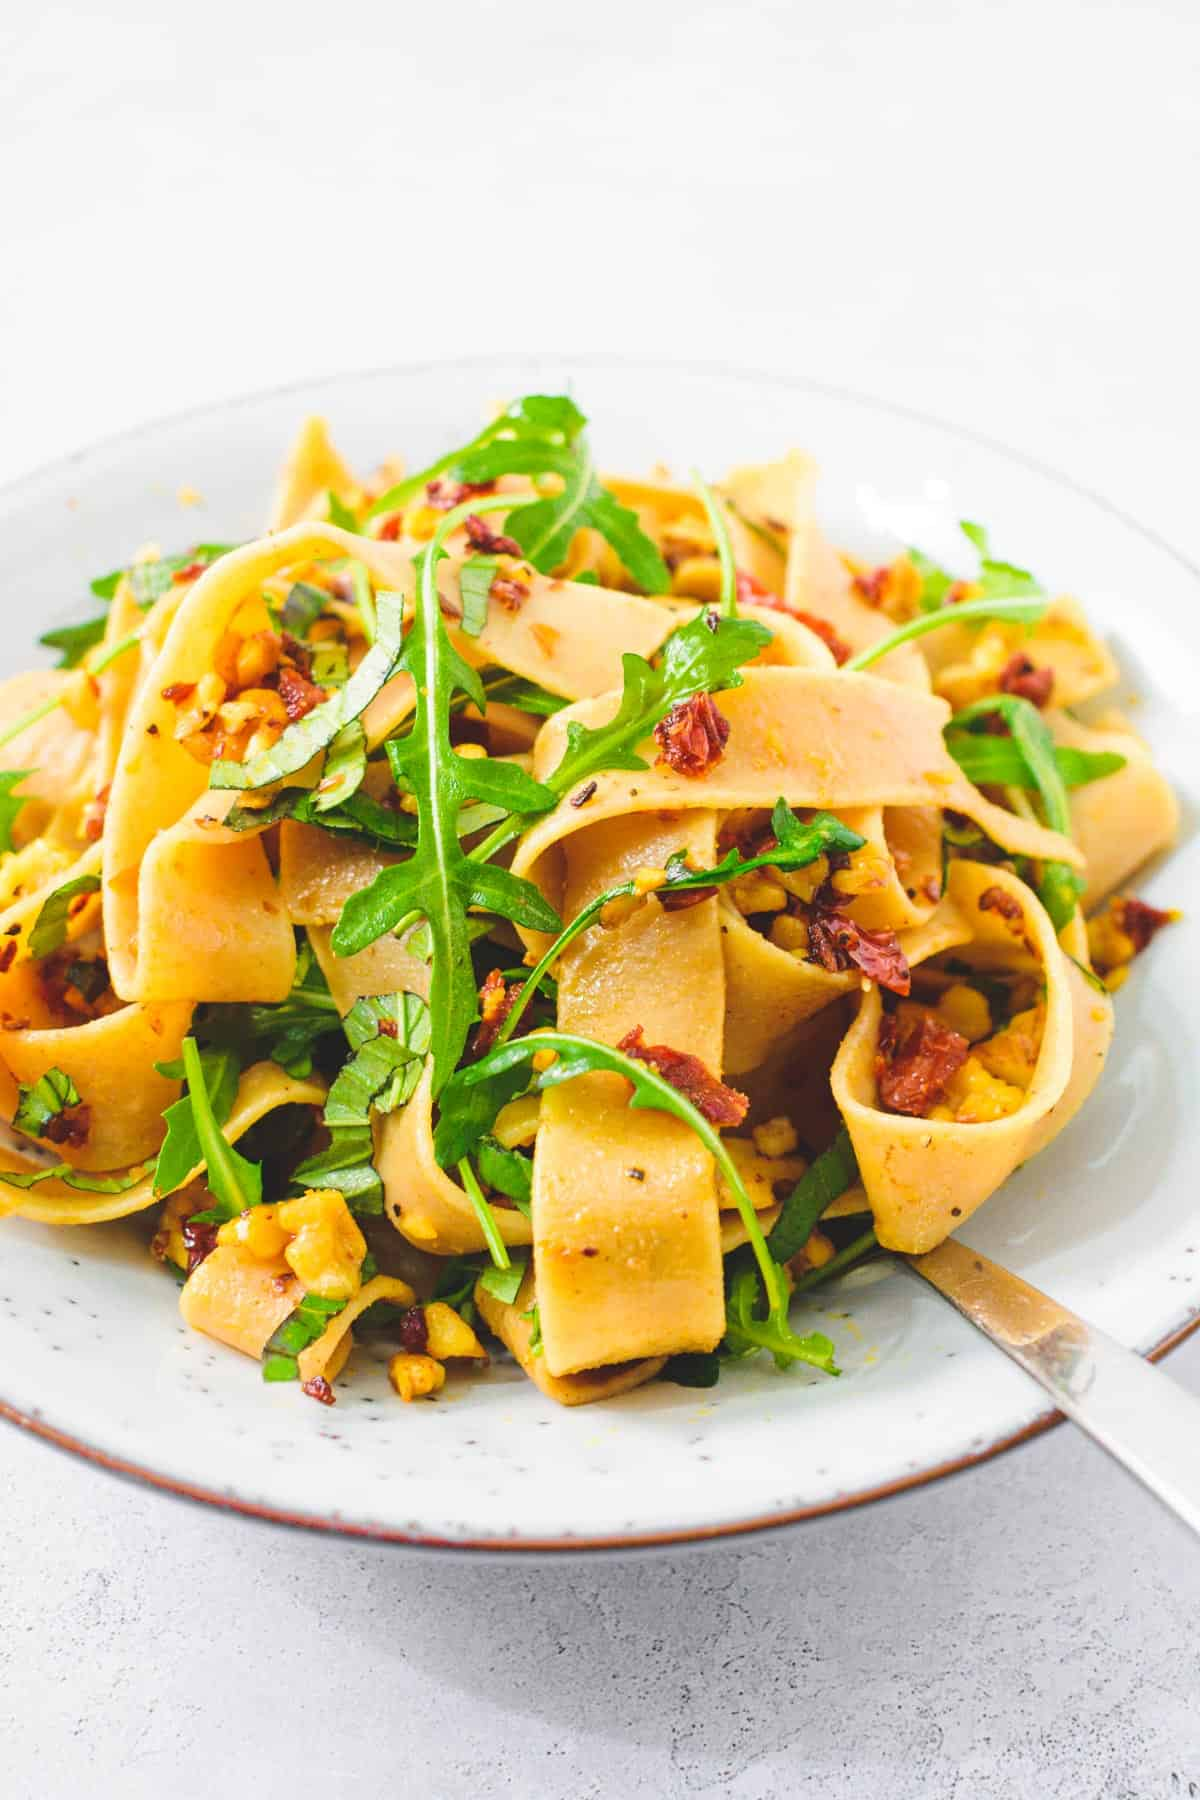 Whole wheat pappardelle with sundried tomatoes, rocket & walnuts in a pasta bowl, with fork.